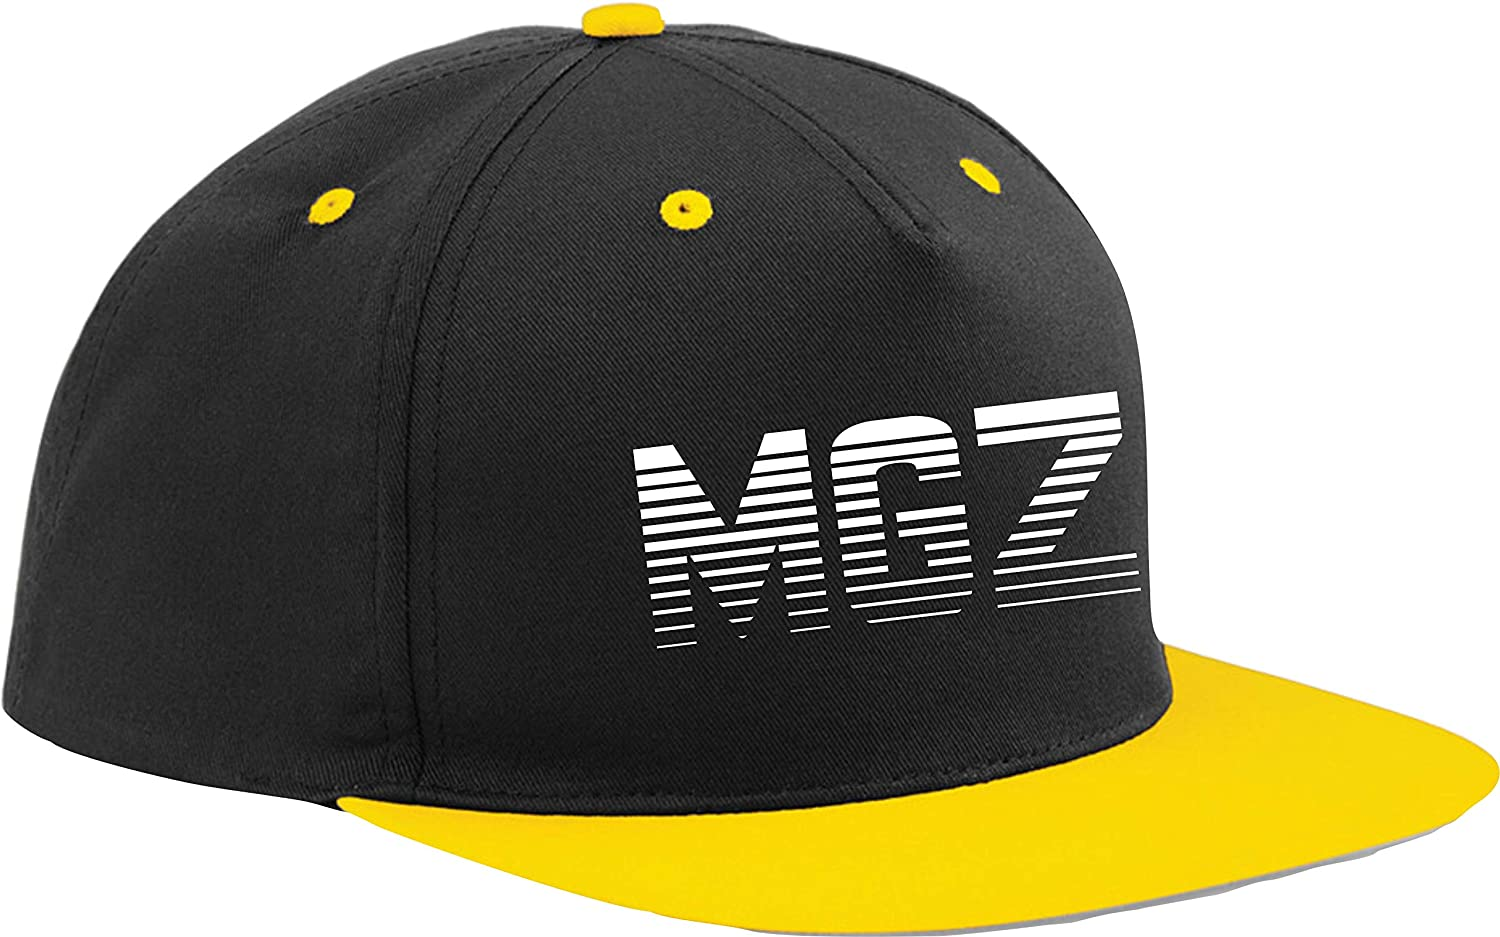 Black Cap//Grey Peak Bothered Morgz Snapback Baseball Cap